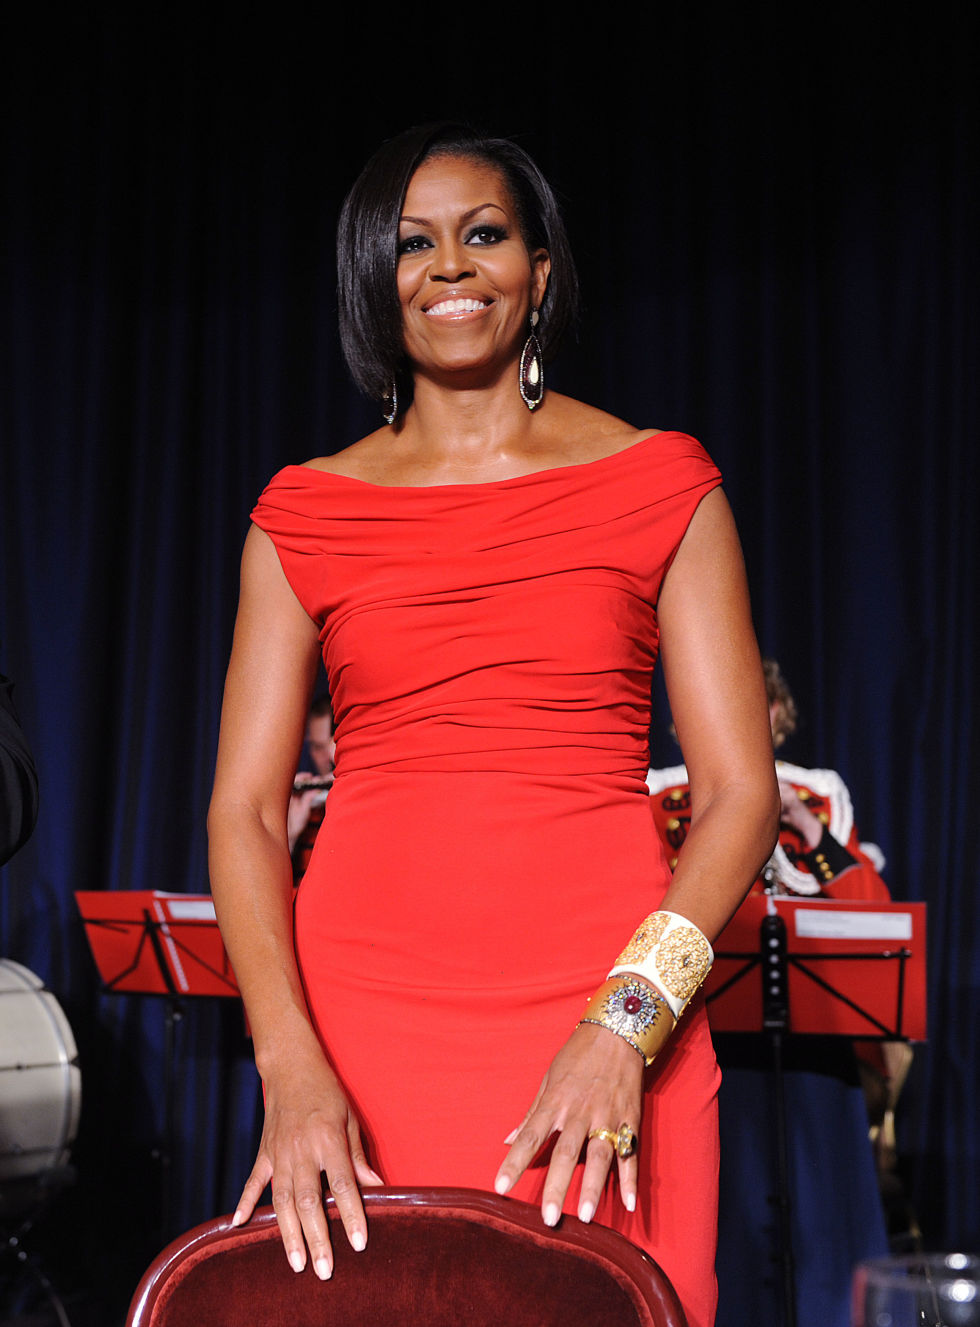 Michelle Obama at the White House Correspondents' Dinner.